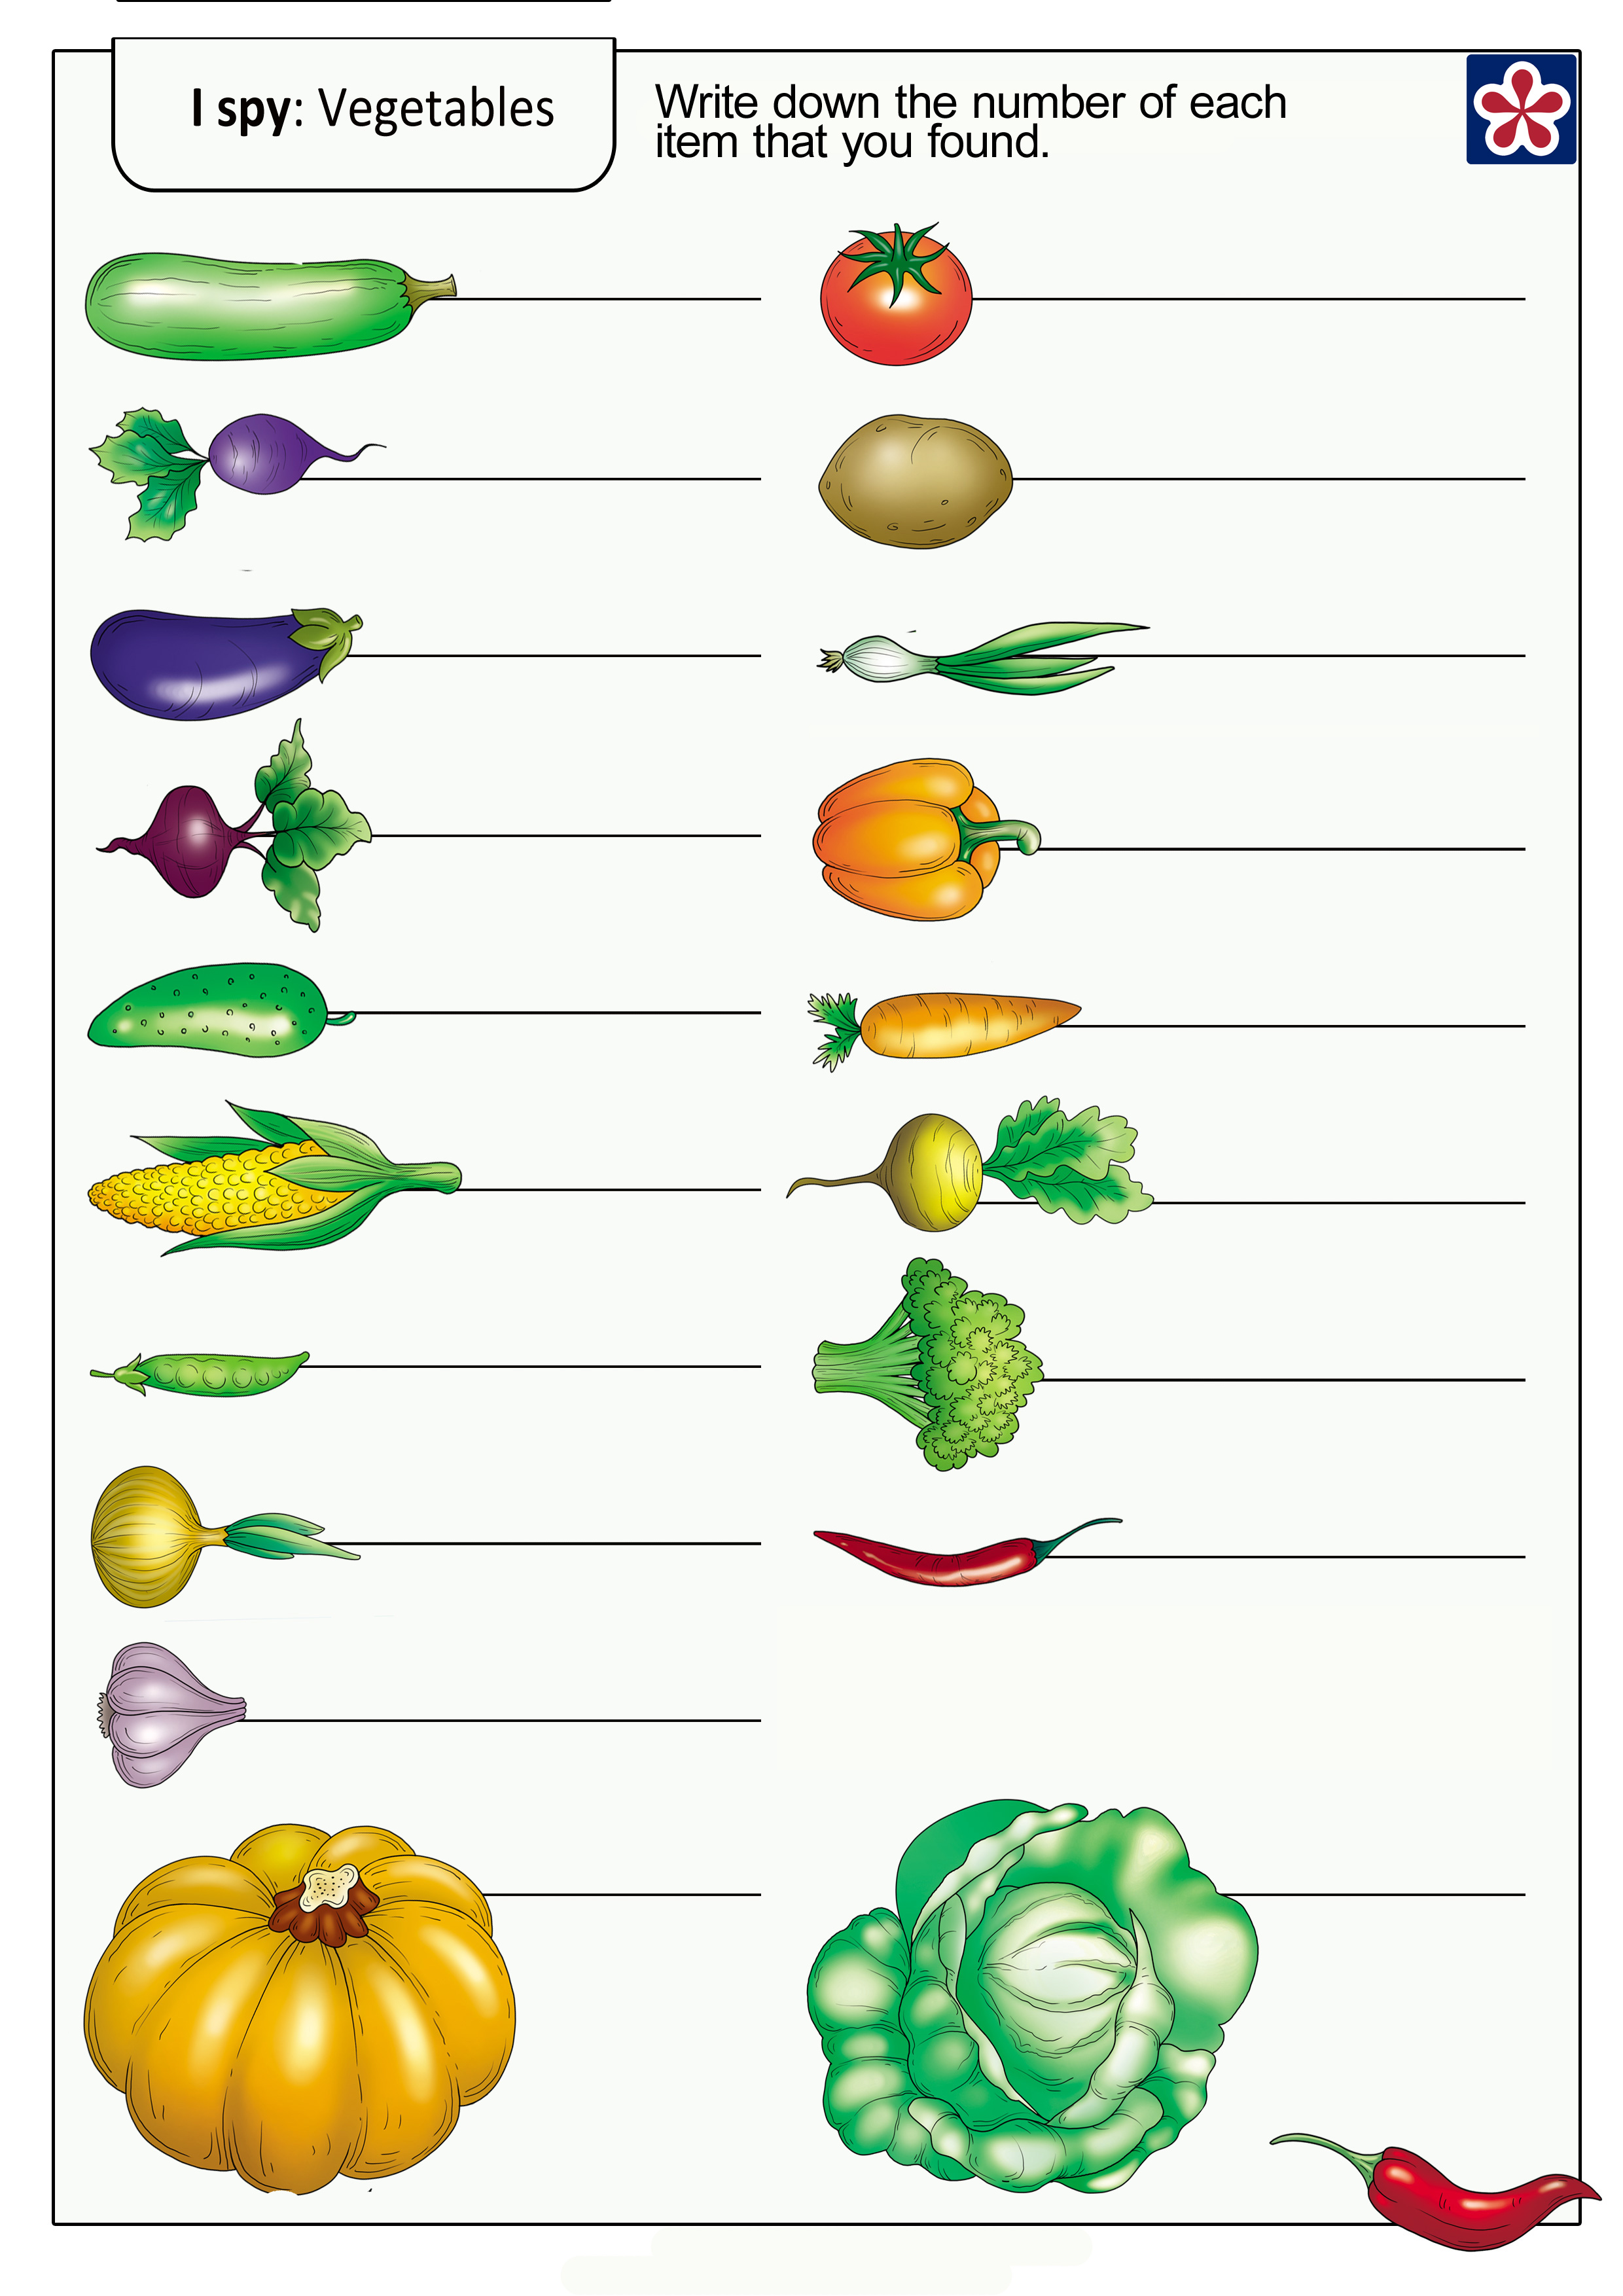 I Spy Game Vegetables Worksheets For Preschoolers